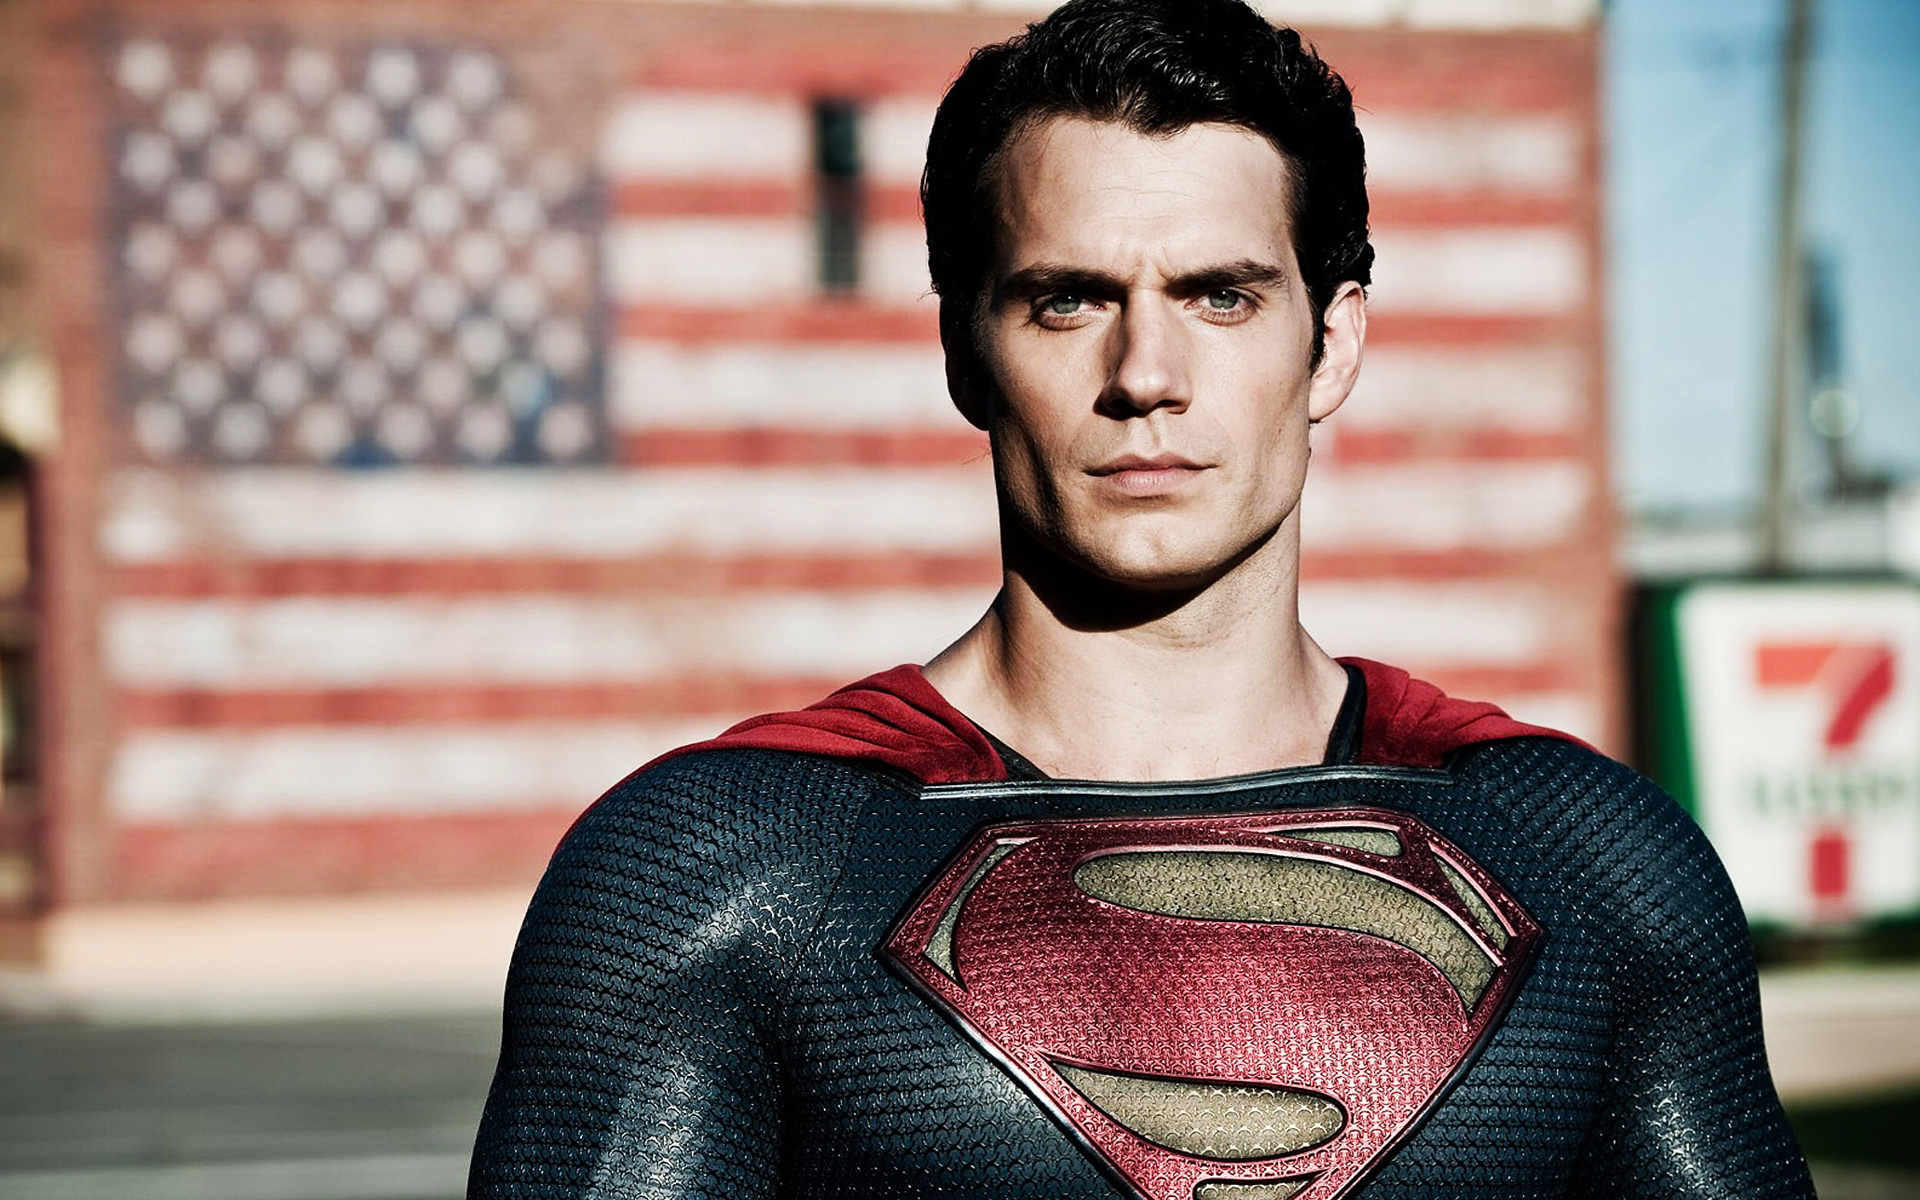 Henry Cavill Man Of Steel Wallpaper